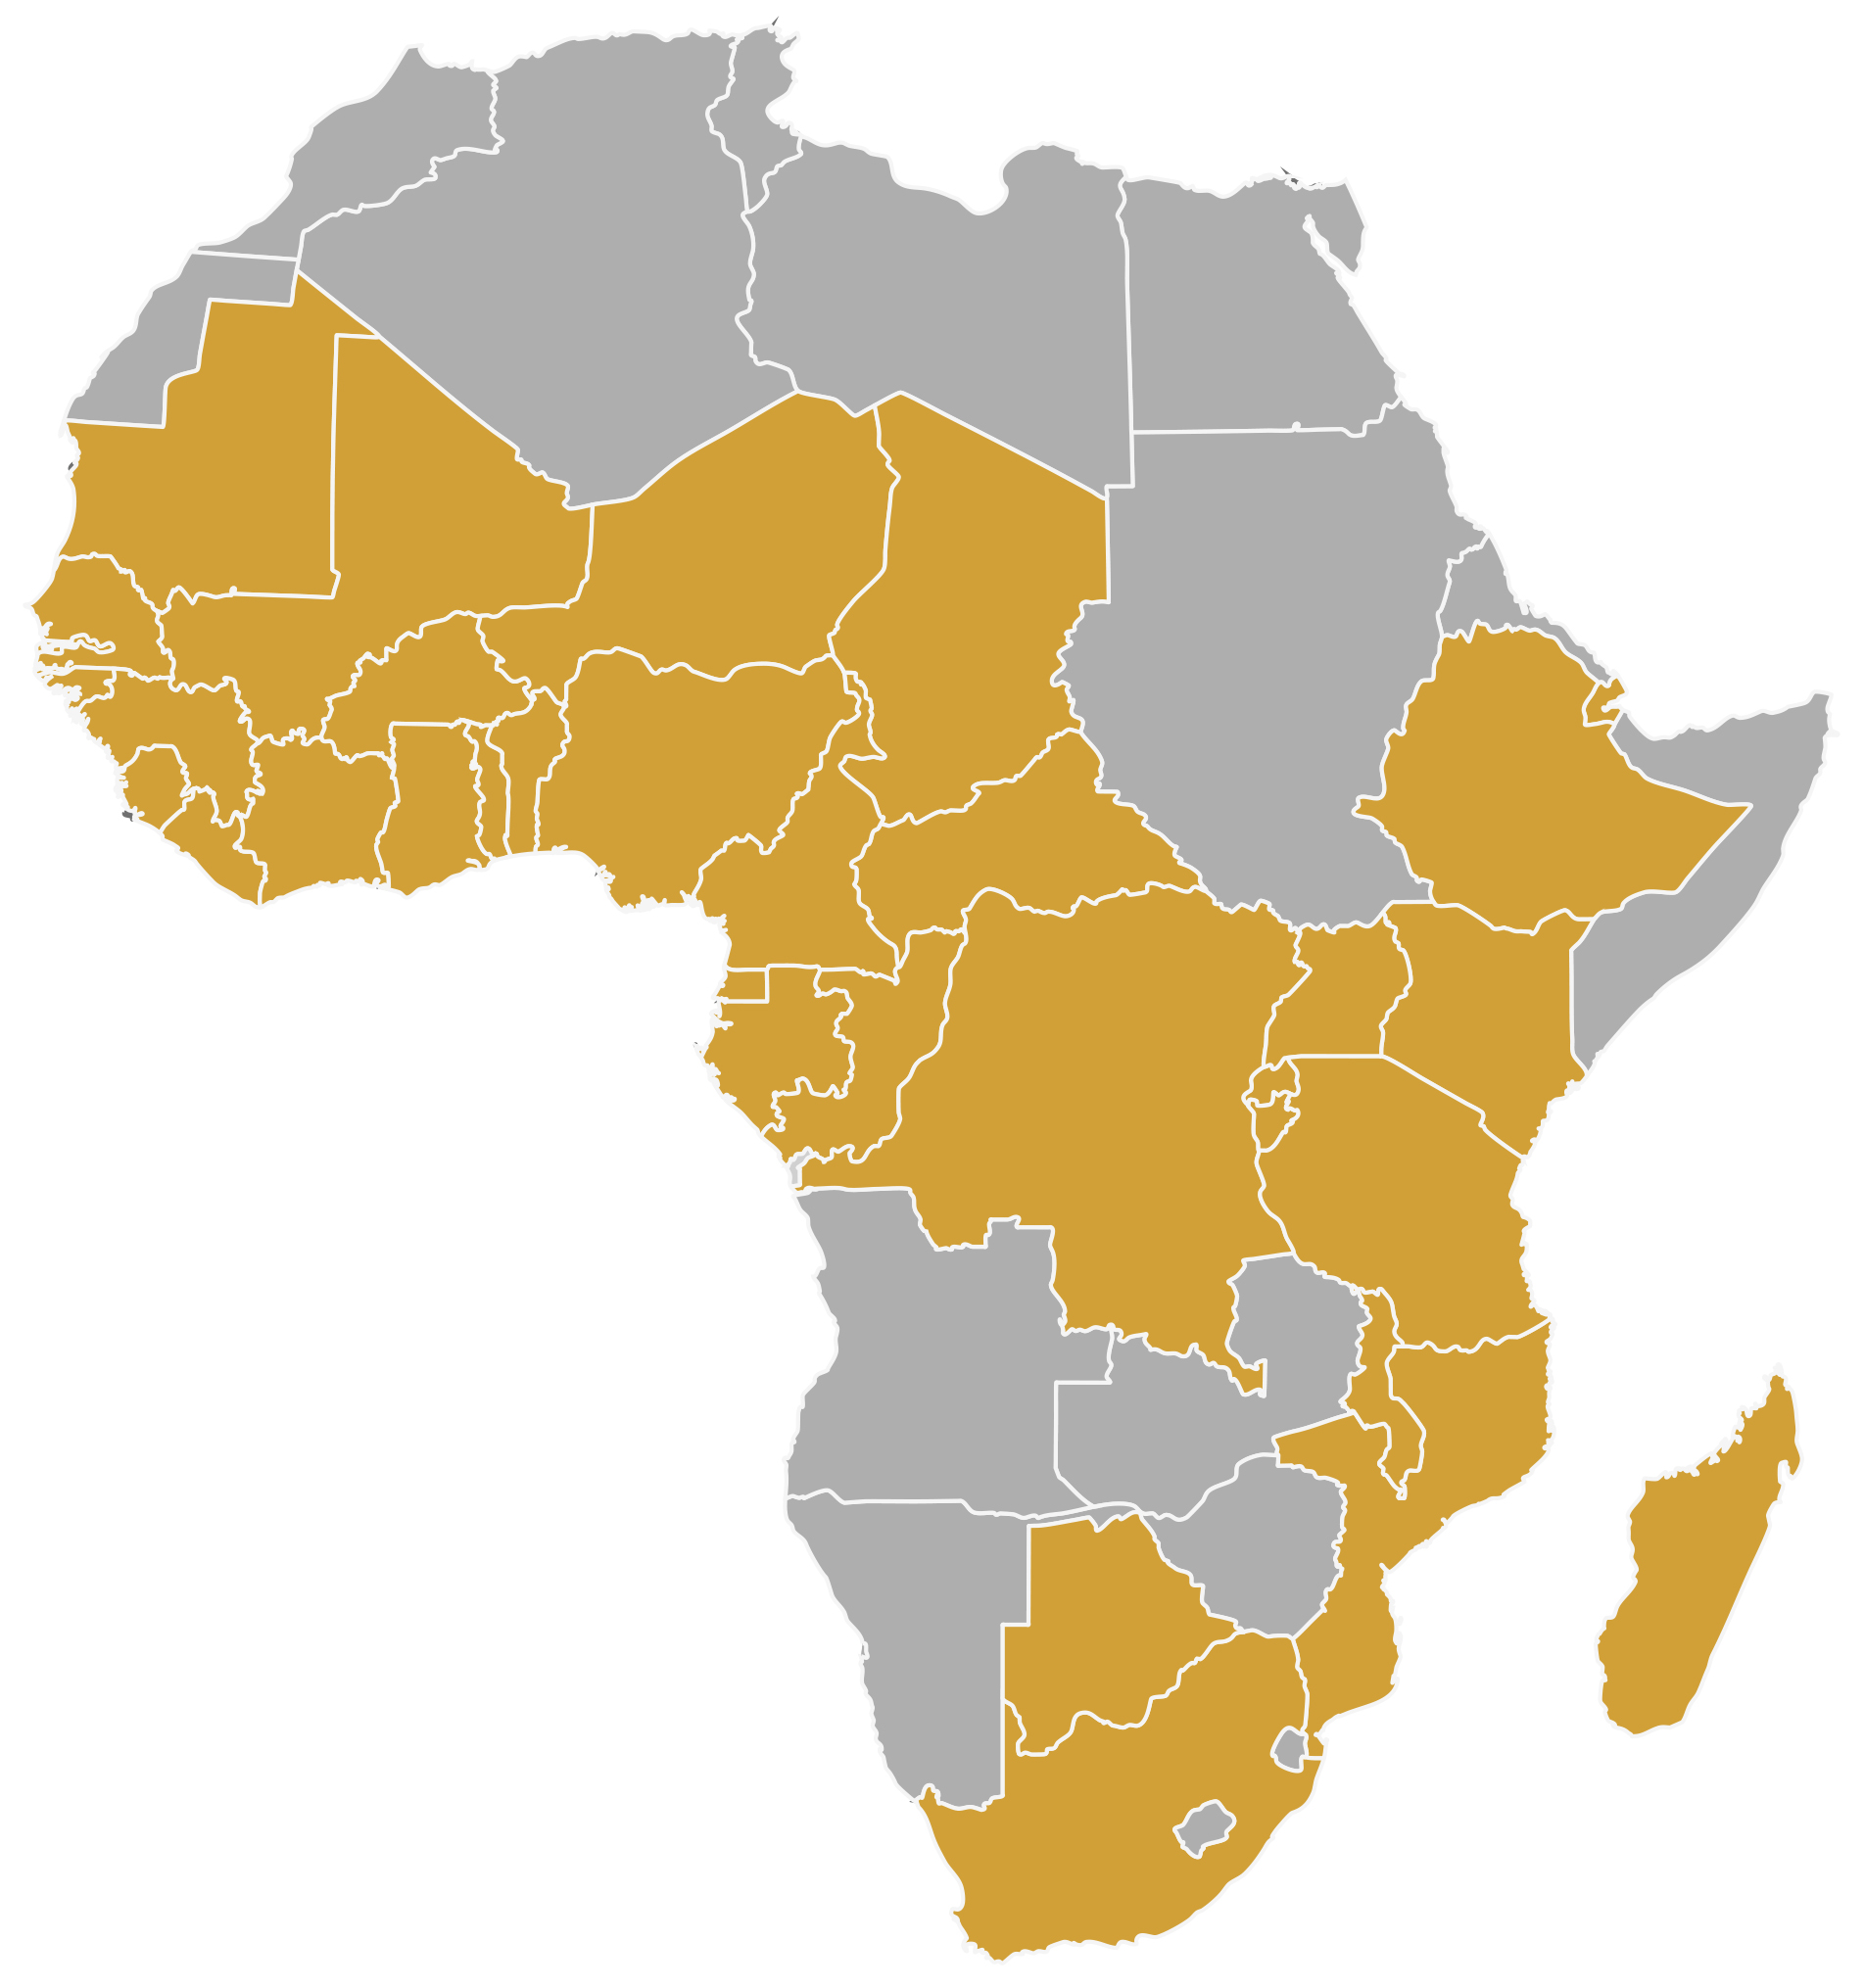 Uganda africa map interior design of an office distribution check how to receive and watch africanews africanews africanews distrib map2 distribution uganda africa map uganda africa map sciox Images